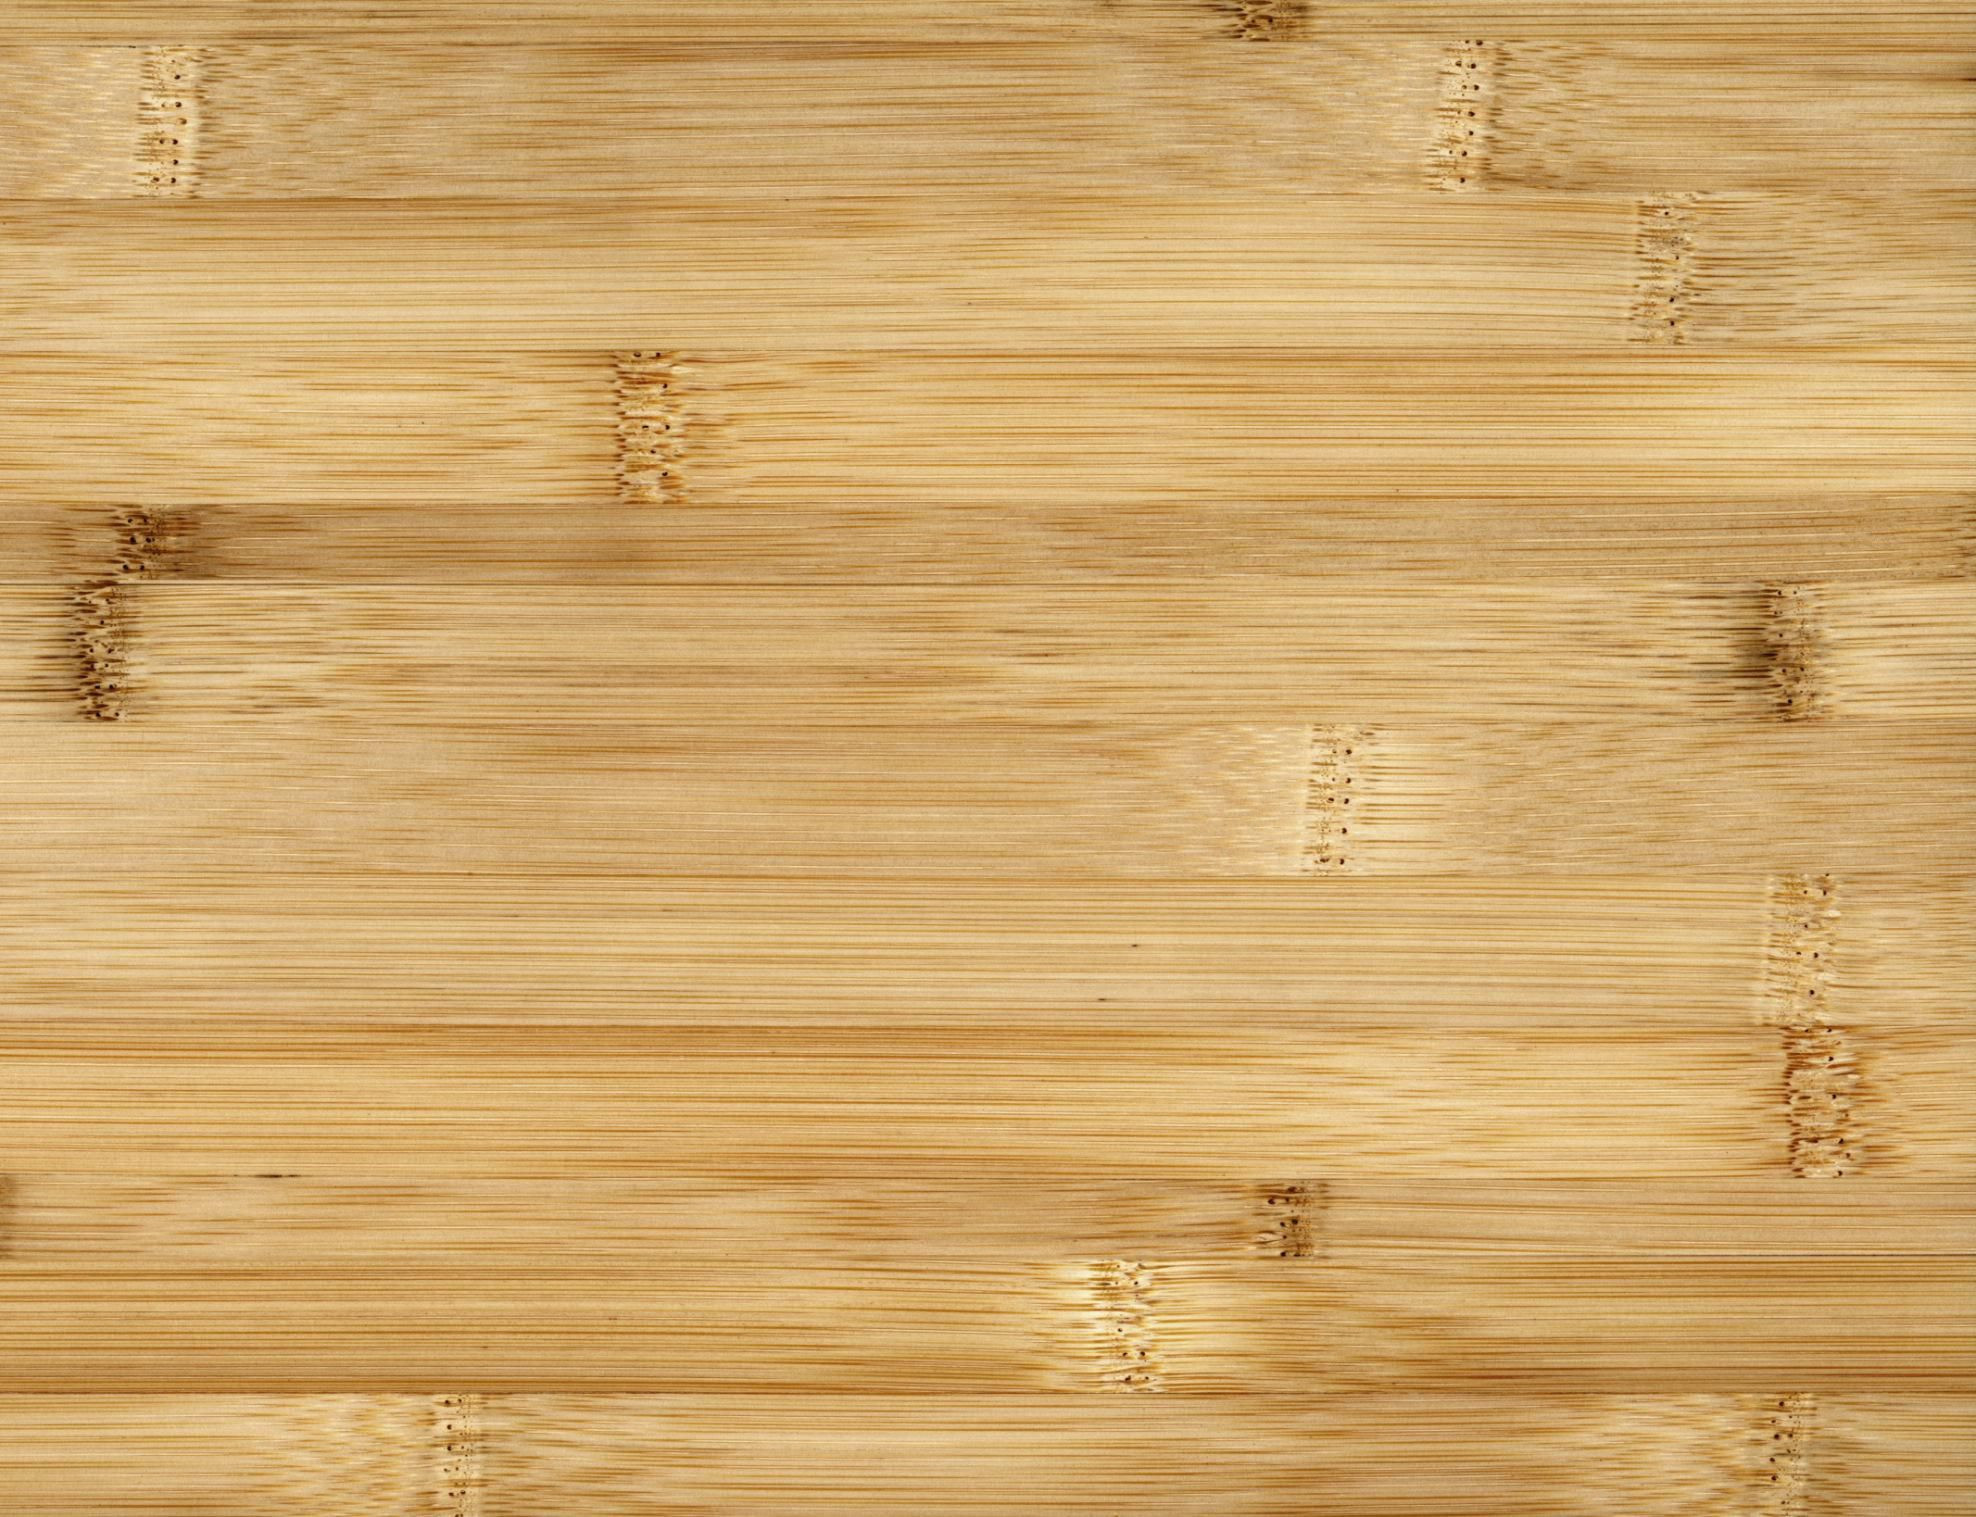 How to Fix Dents In Hardwood Floors Of How to Clean Bamboo Flooring with Regard to 200266305 001 56a2fd815f9b58b7d0d000cd